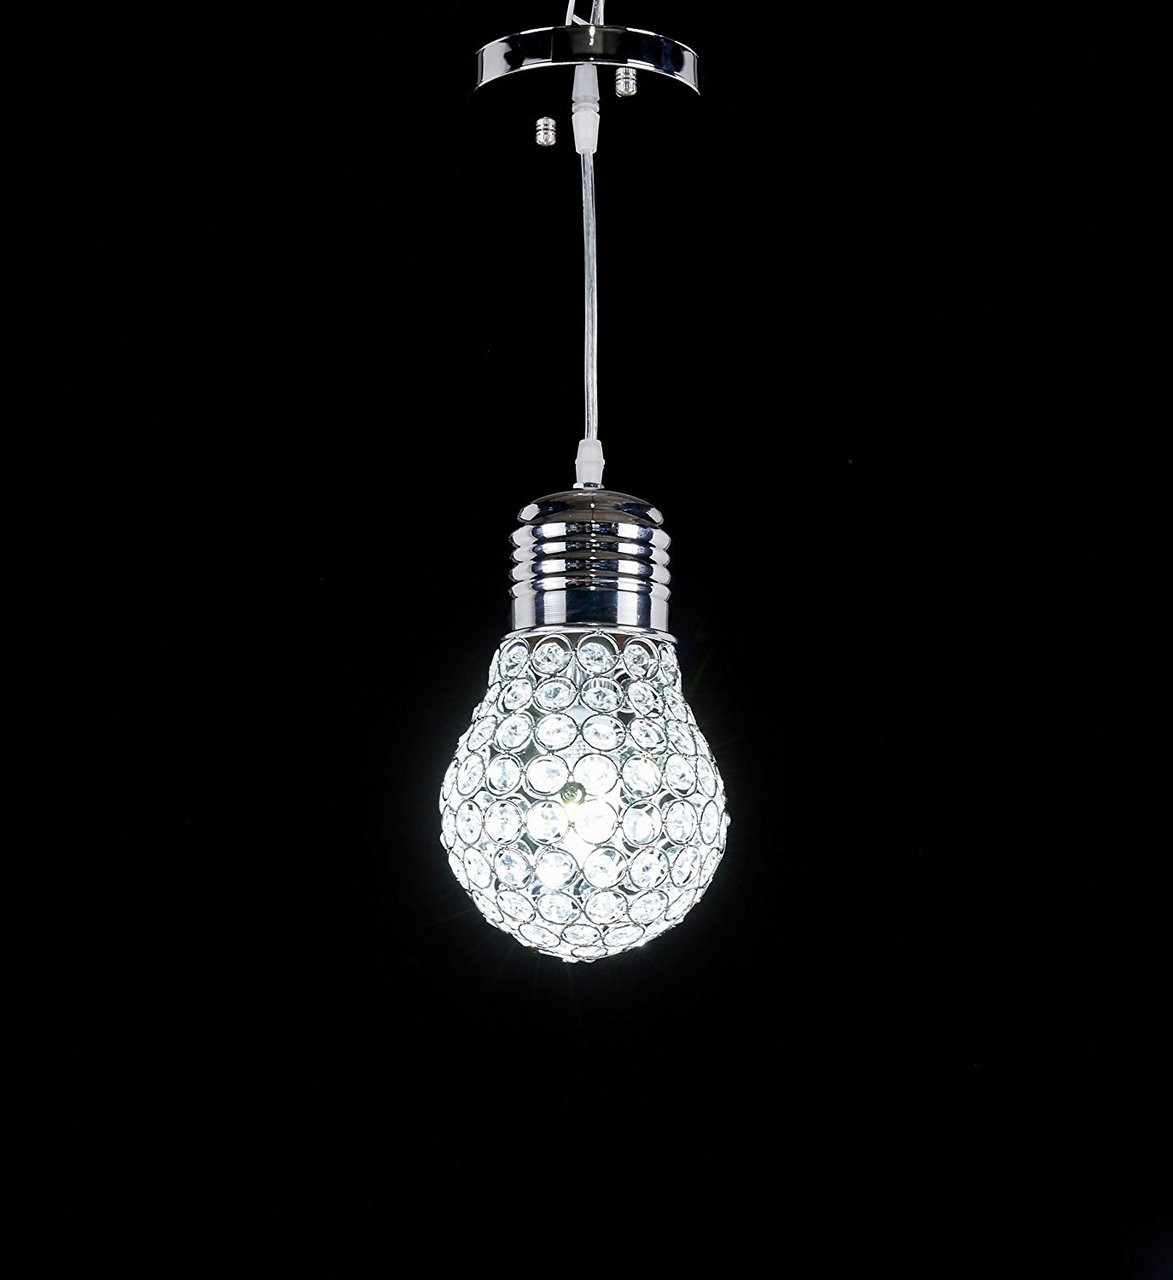 new arrival 76db5 3d27b New Galaxy 1-light Chrome Finish Metal Shade Crystal Chandelier Hanging  Pendant Ceiling Lamp Fixture